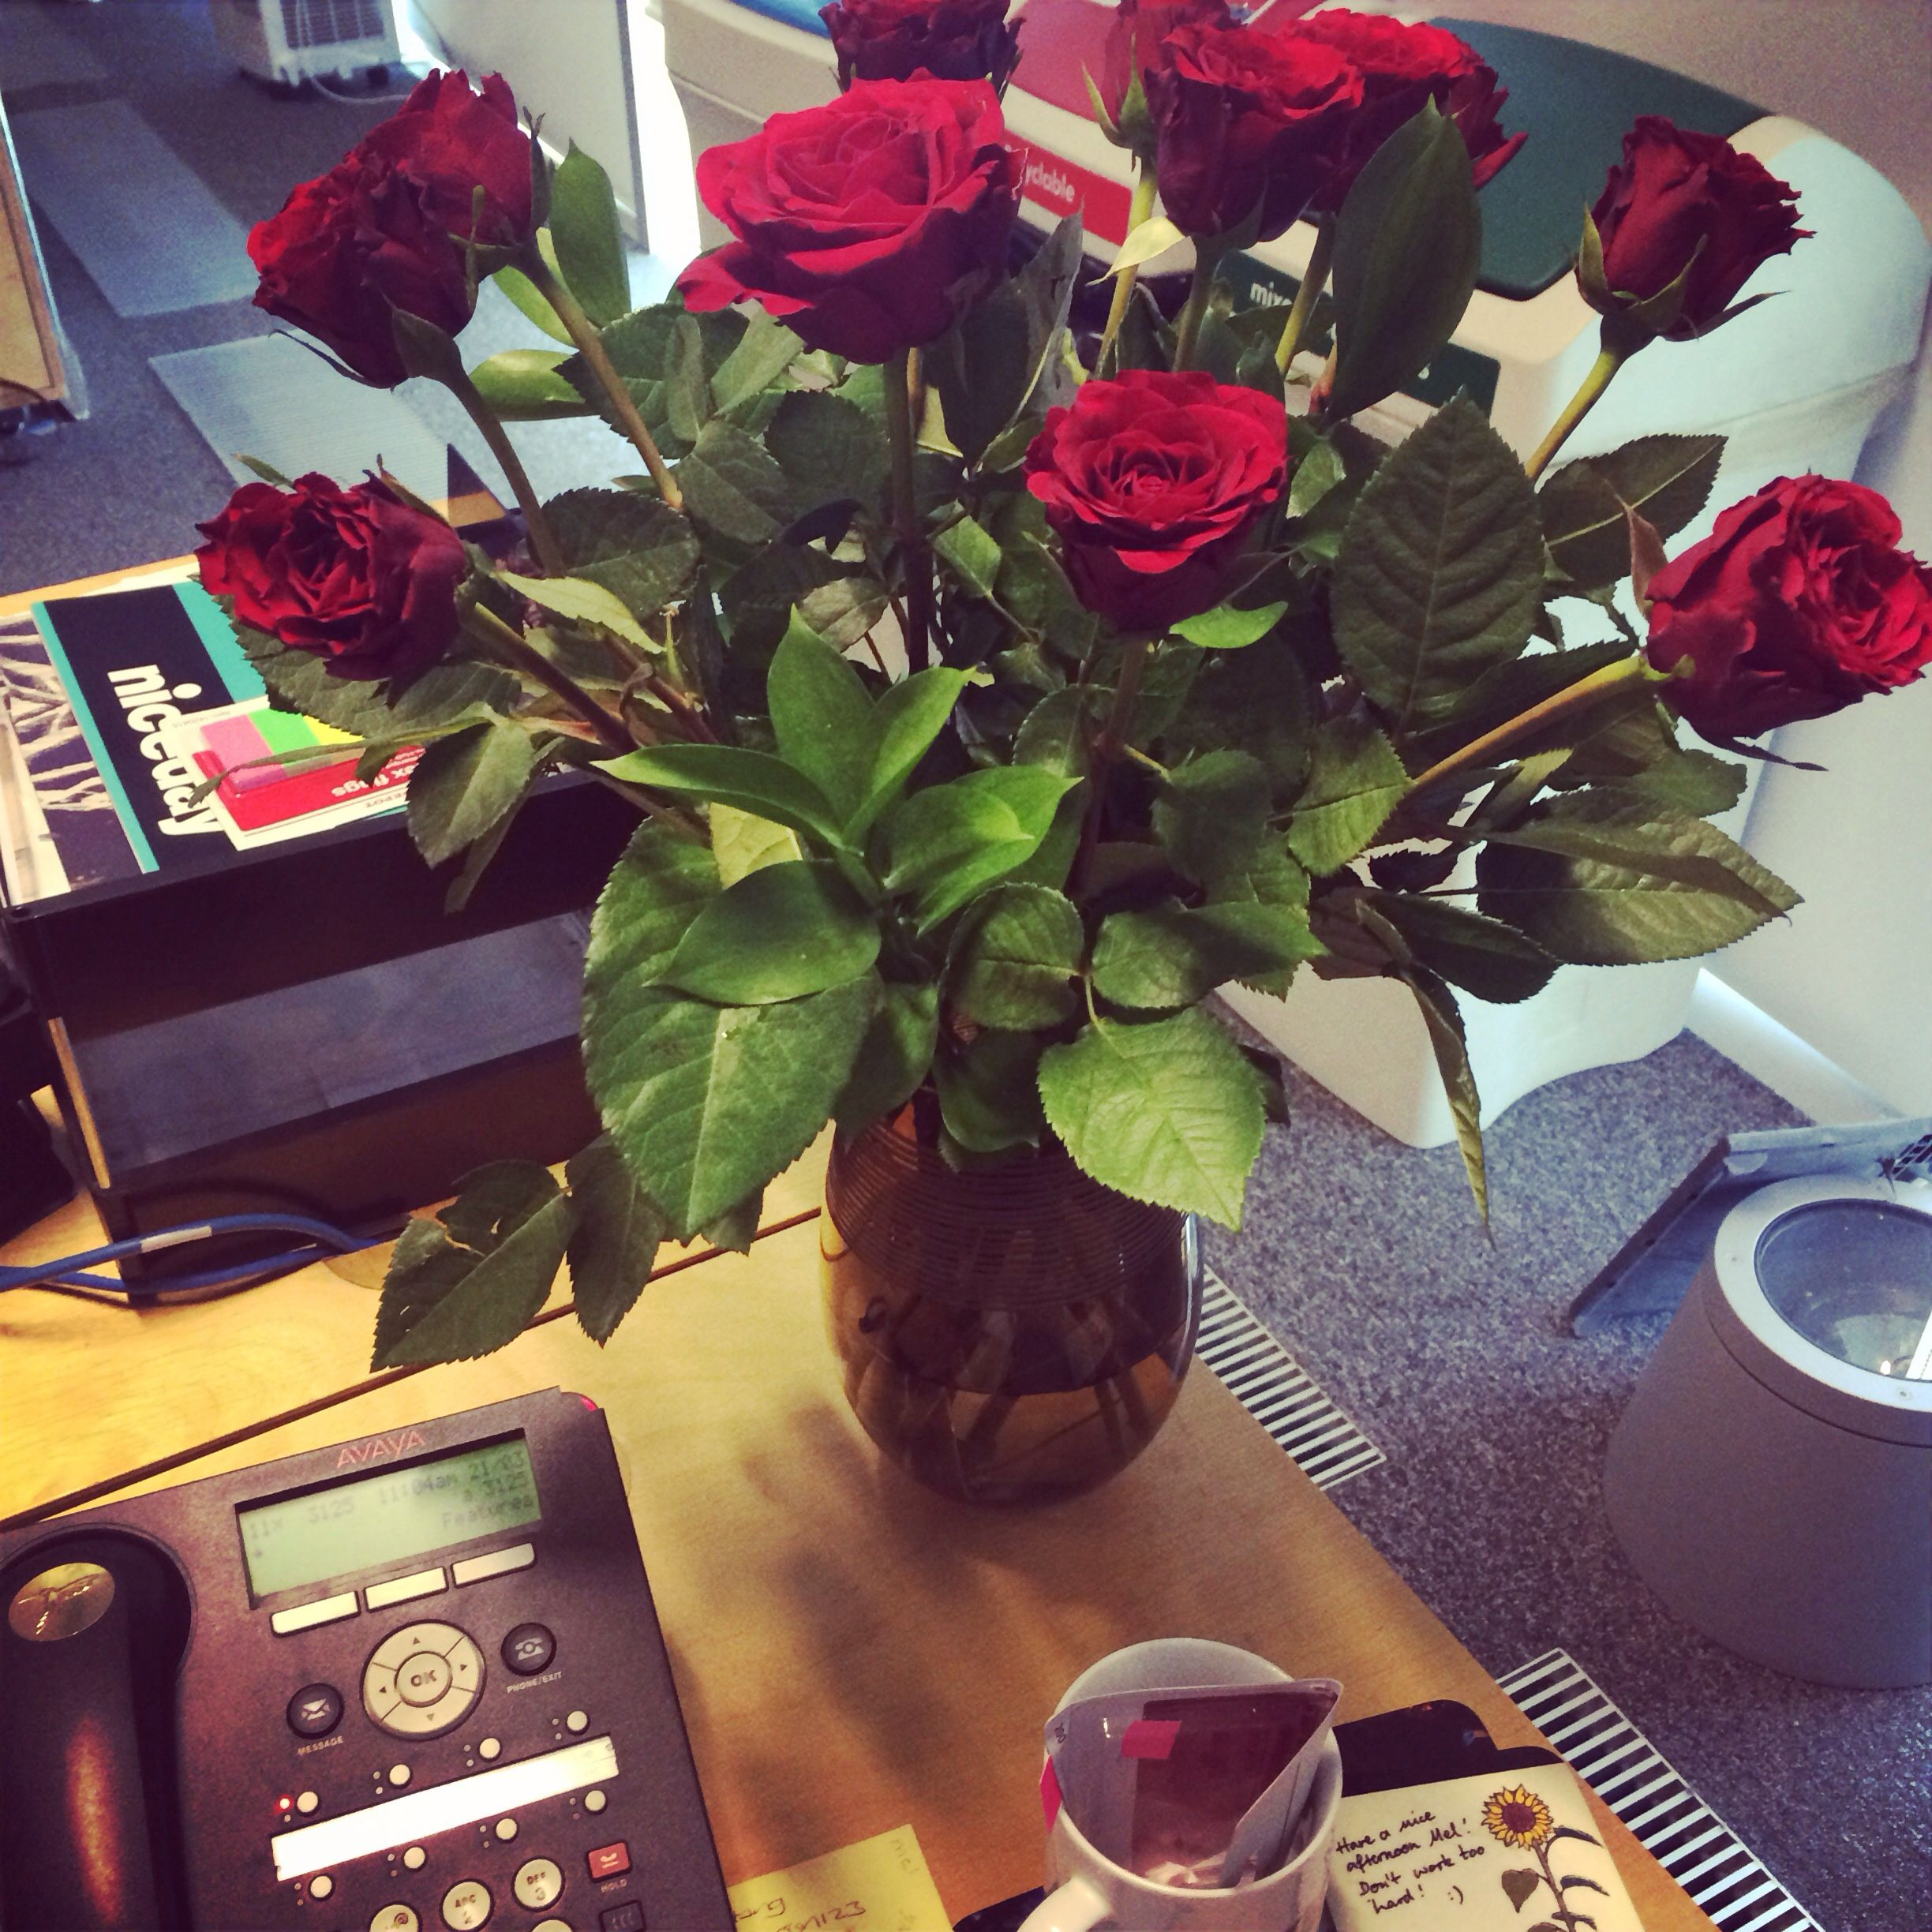 Flowers from my lovely boyfriend! #roses #office #surprise